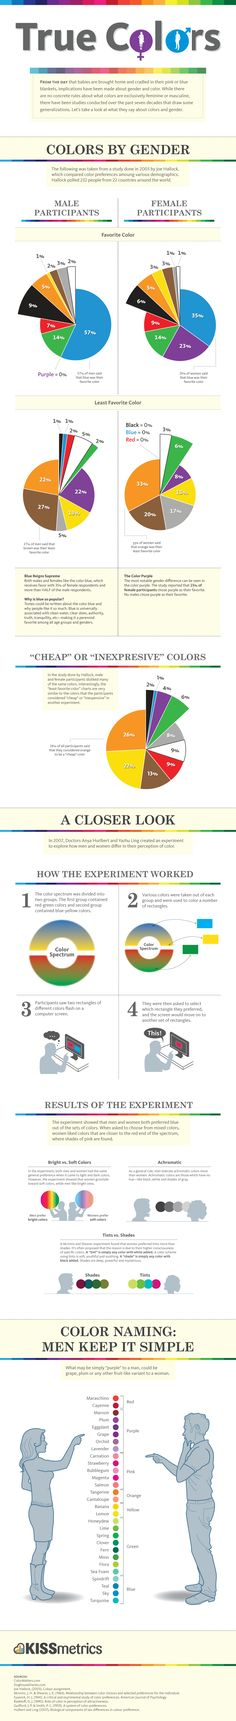 July 6, 2015 // 7:00 AM Battle of the Sexes: What Men and Women Think About Colors [Infographic] Written by Jami Oetting | @jamioetting